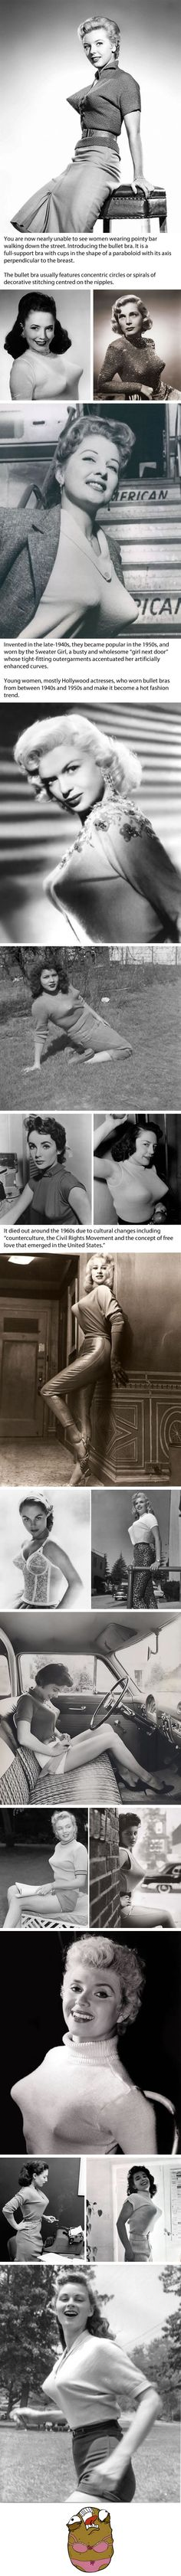 You'll poke someone's eye out with those things. Introducing bullet bras the from the 1940s and 1950s